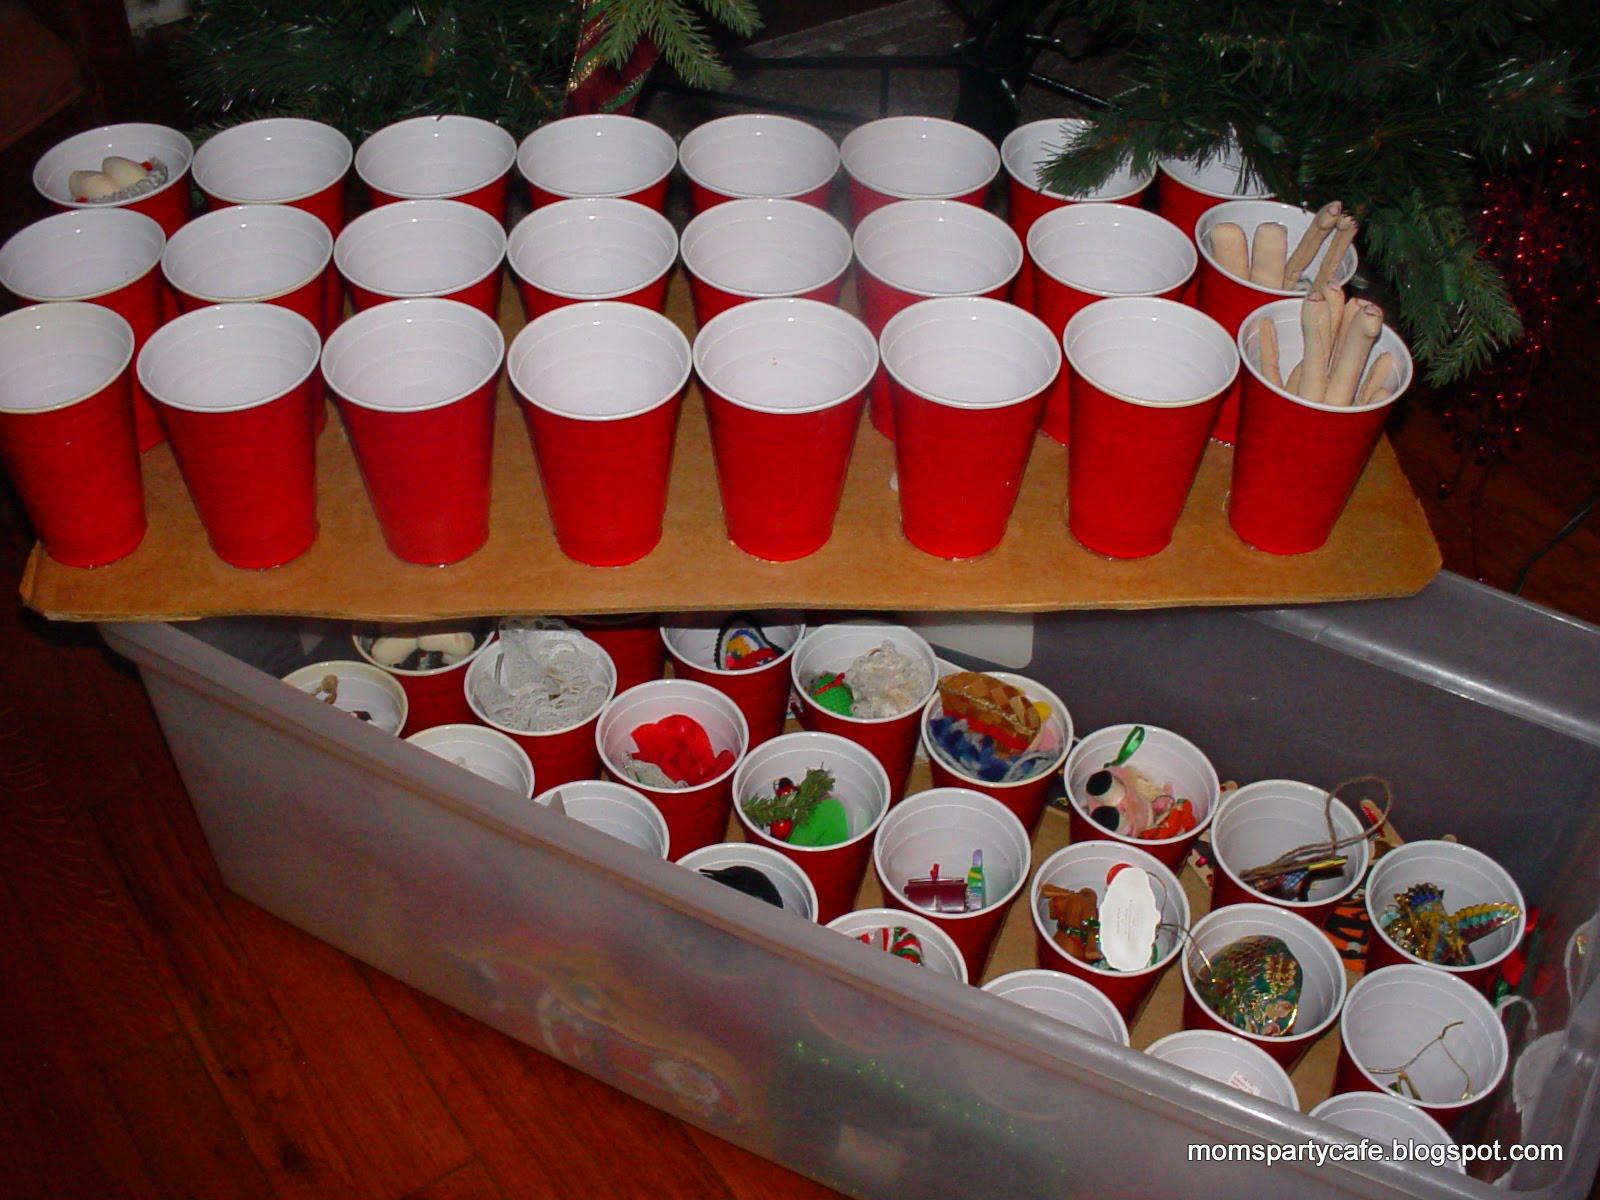 Keep Christmas decorations safe and organized by using cardboard and red plastic cups